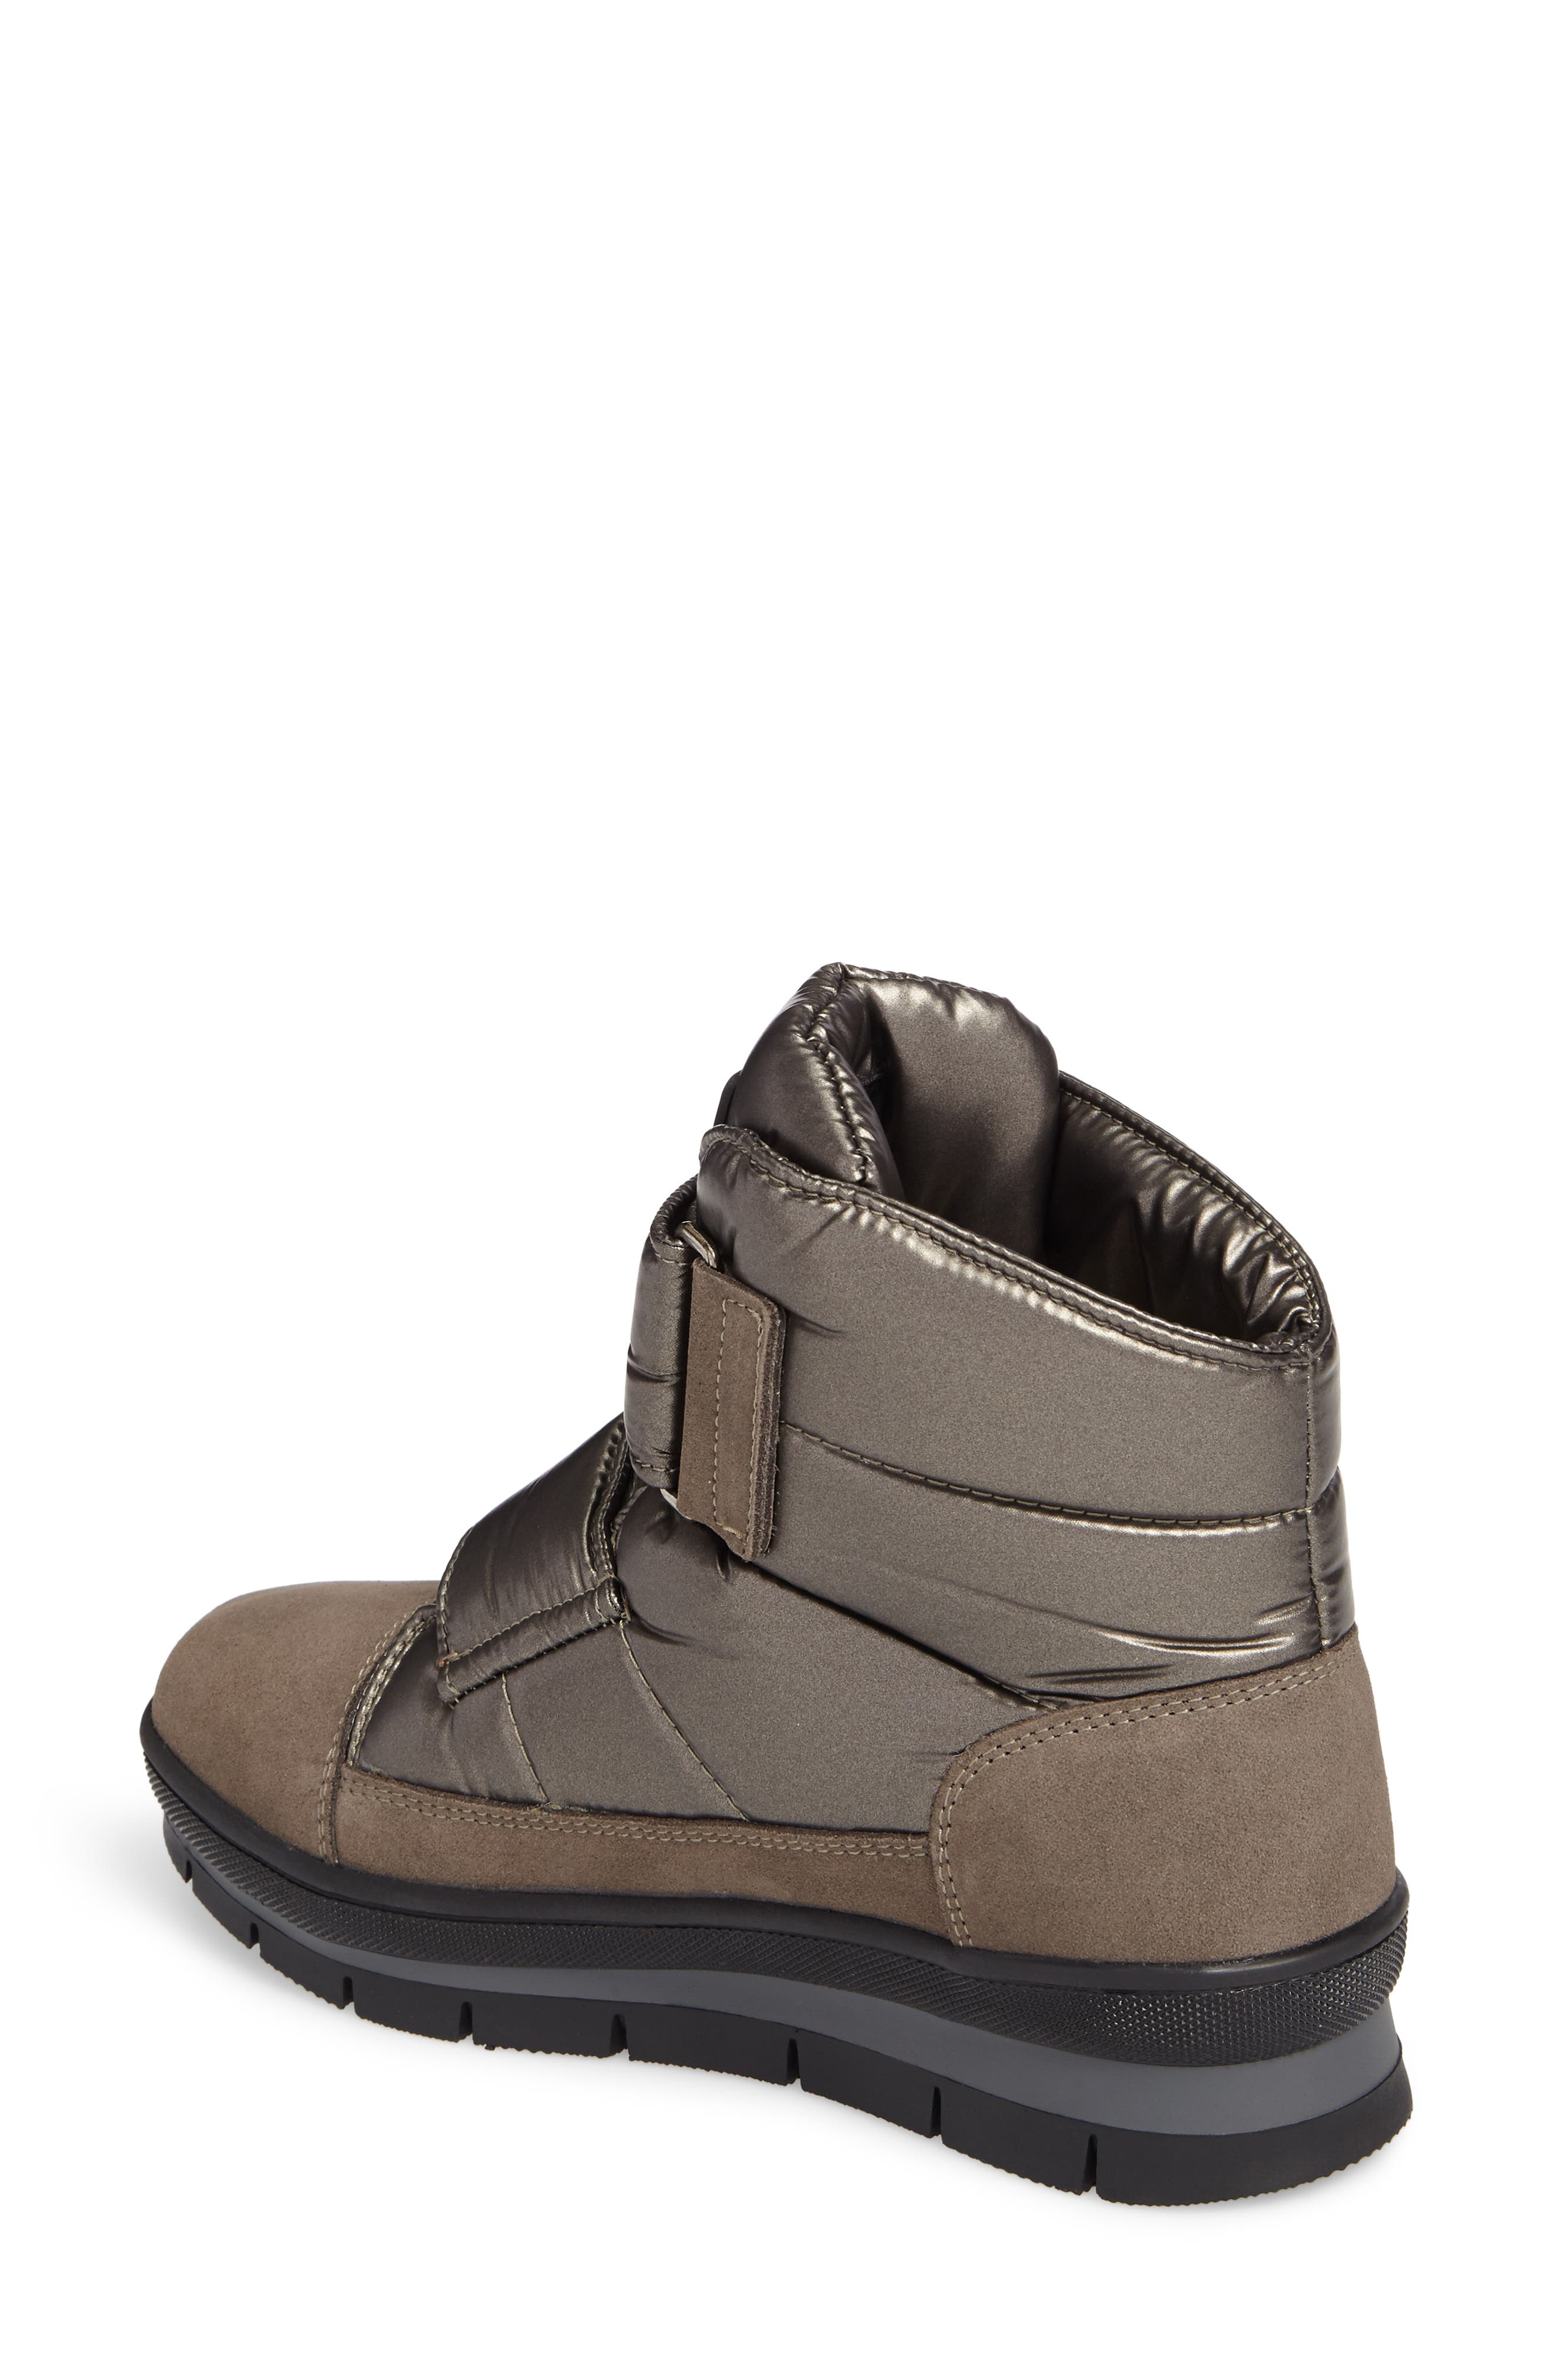 Gran Sasso Waterproof Boot,                             Alternate thumbnail 2, color,                             PEWTER BALTICO